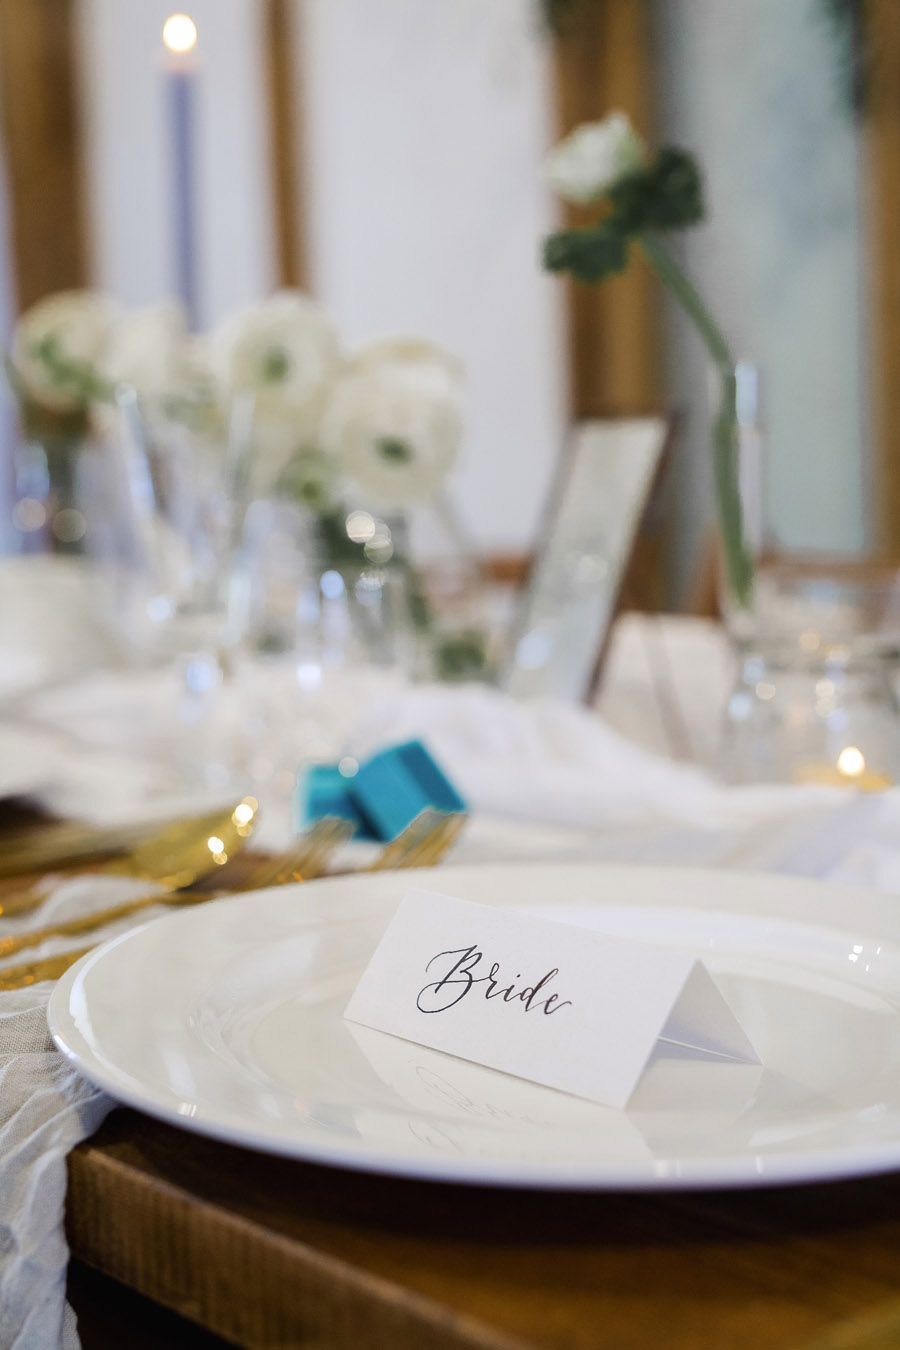 Sustainable, vegan and organic wedding styling ideas from the UK (17)